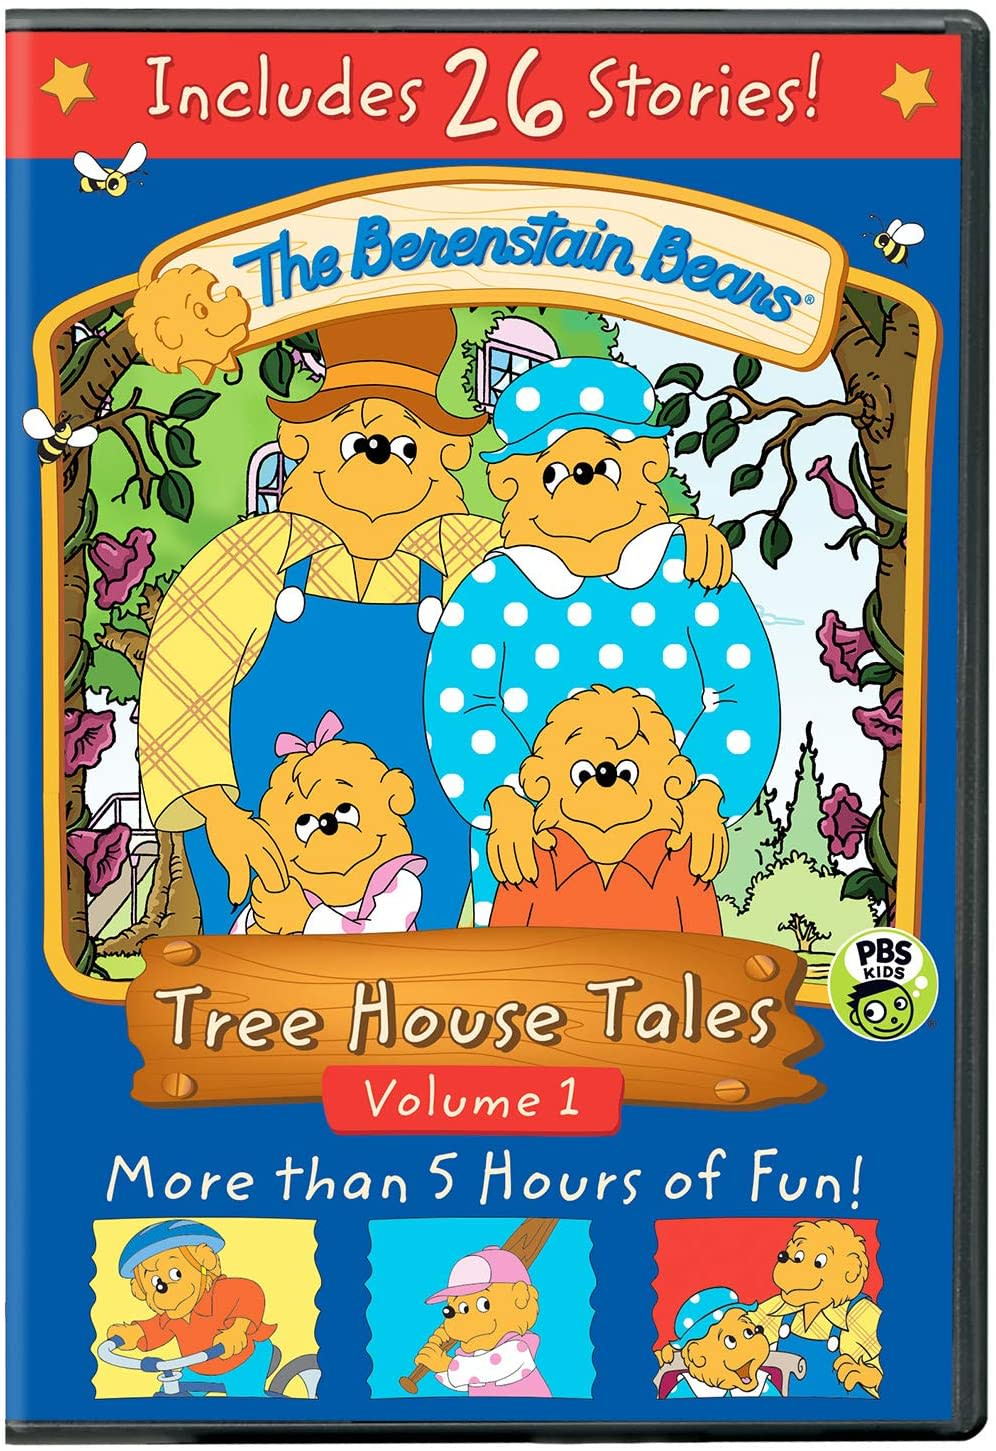 The Berenstain Bears: Tree House Tales - Volume 1 [DVD]